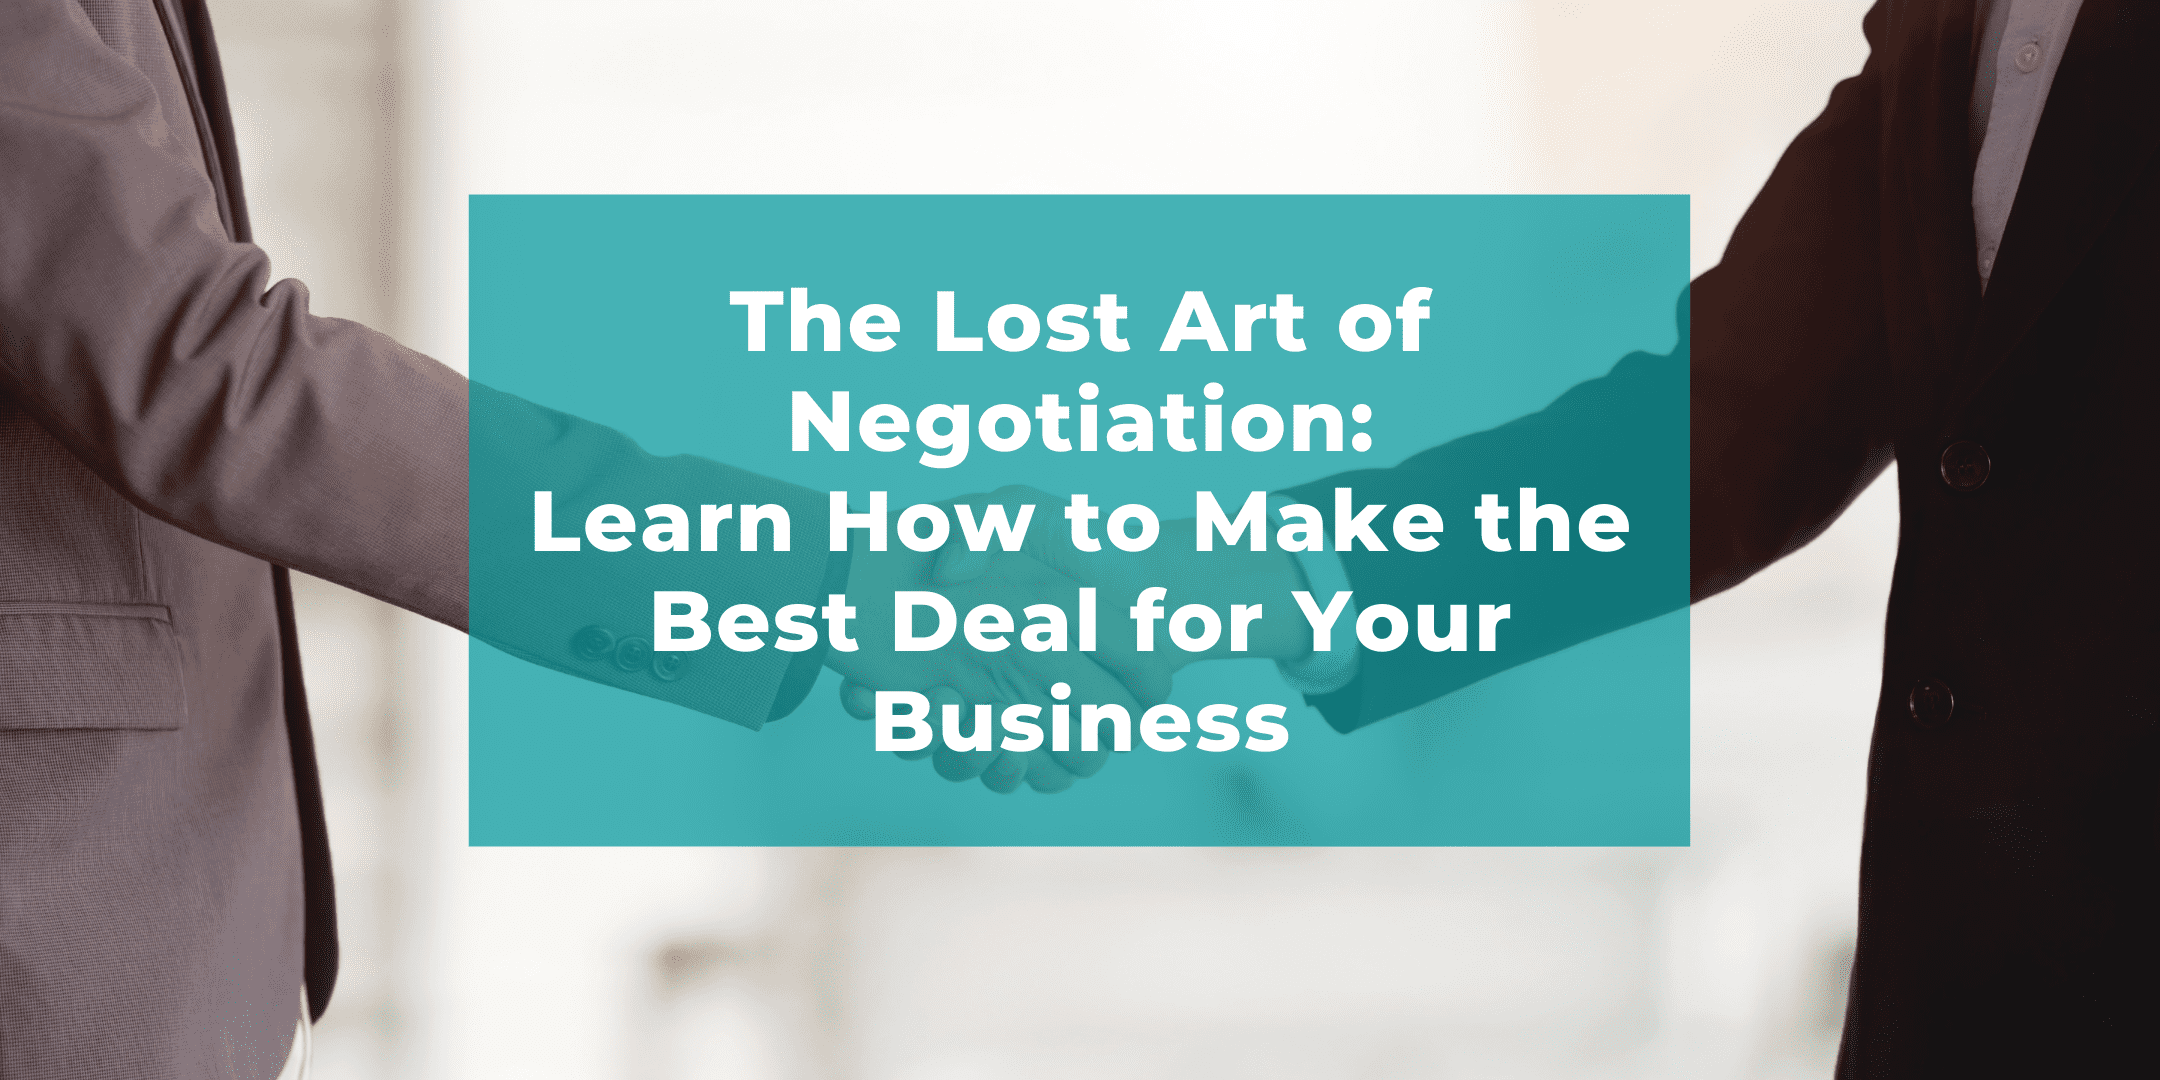 The Lost Art of Negotiation: How to Make the Best Deal for Your Business